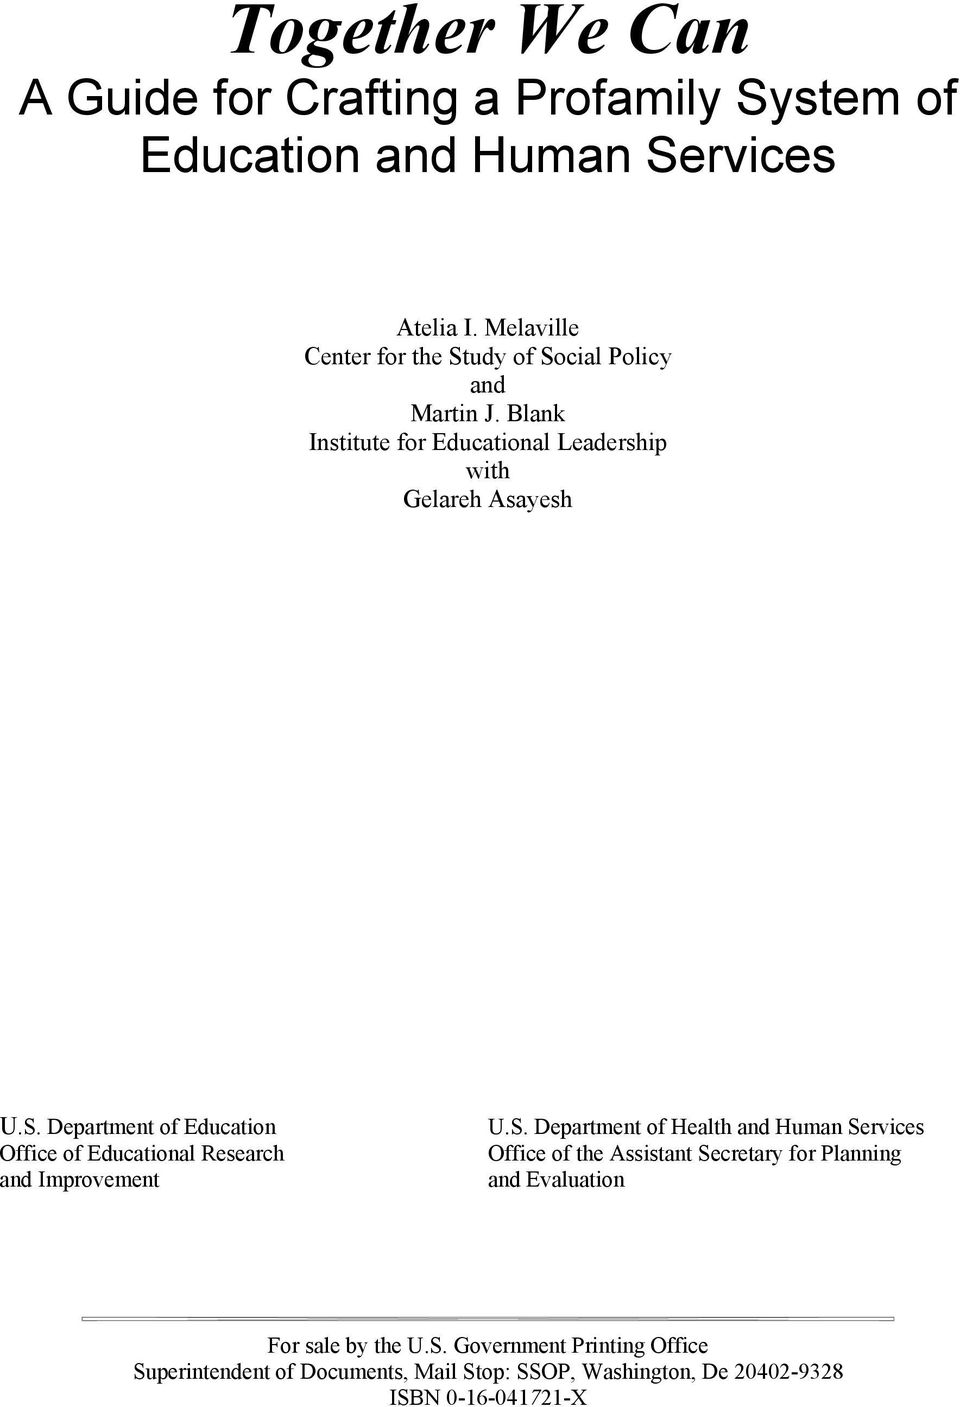 S. Department of Health and Human Services Office of the Assistant Secretary for Planning and Evaluation For sale by the U.S. Government Printing Office Superintendent of Documents, Mail Stop: SSOP, Washington, De 20402-9328 ISBN 0-16-041721-X